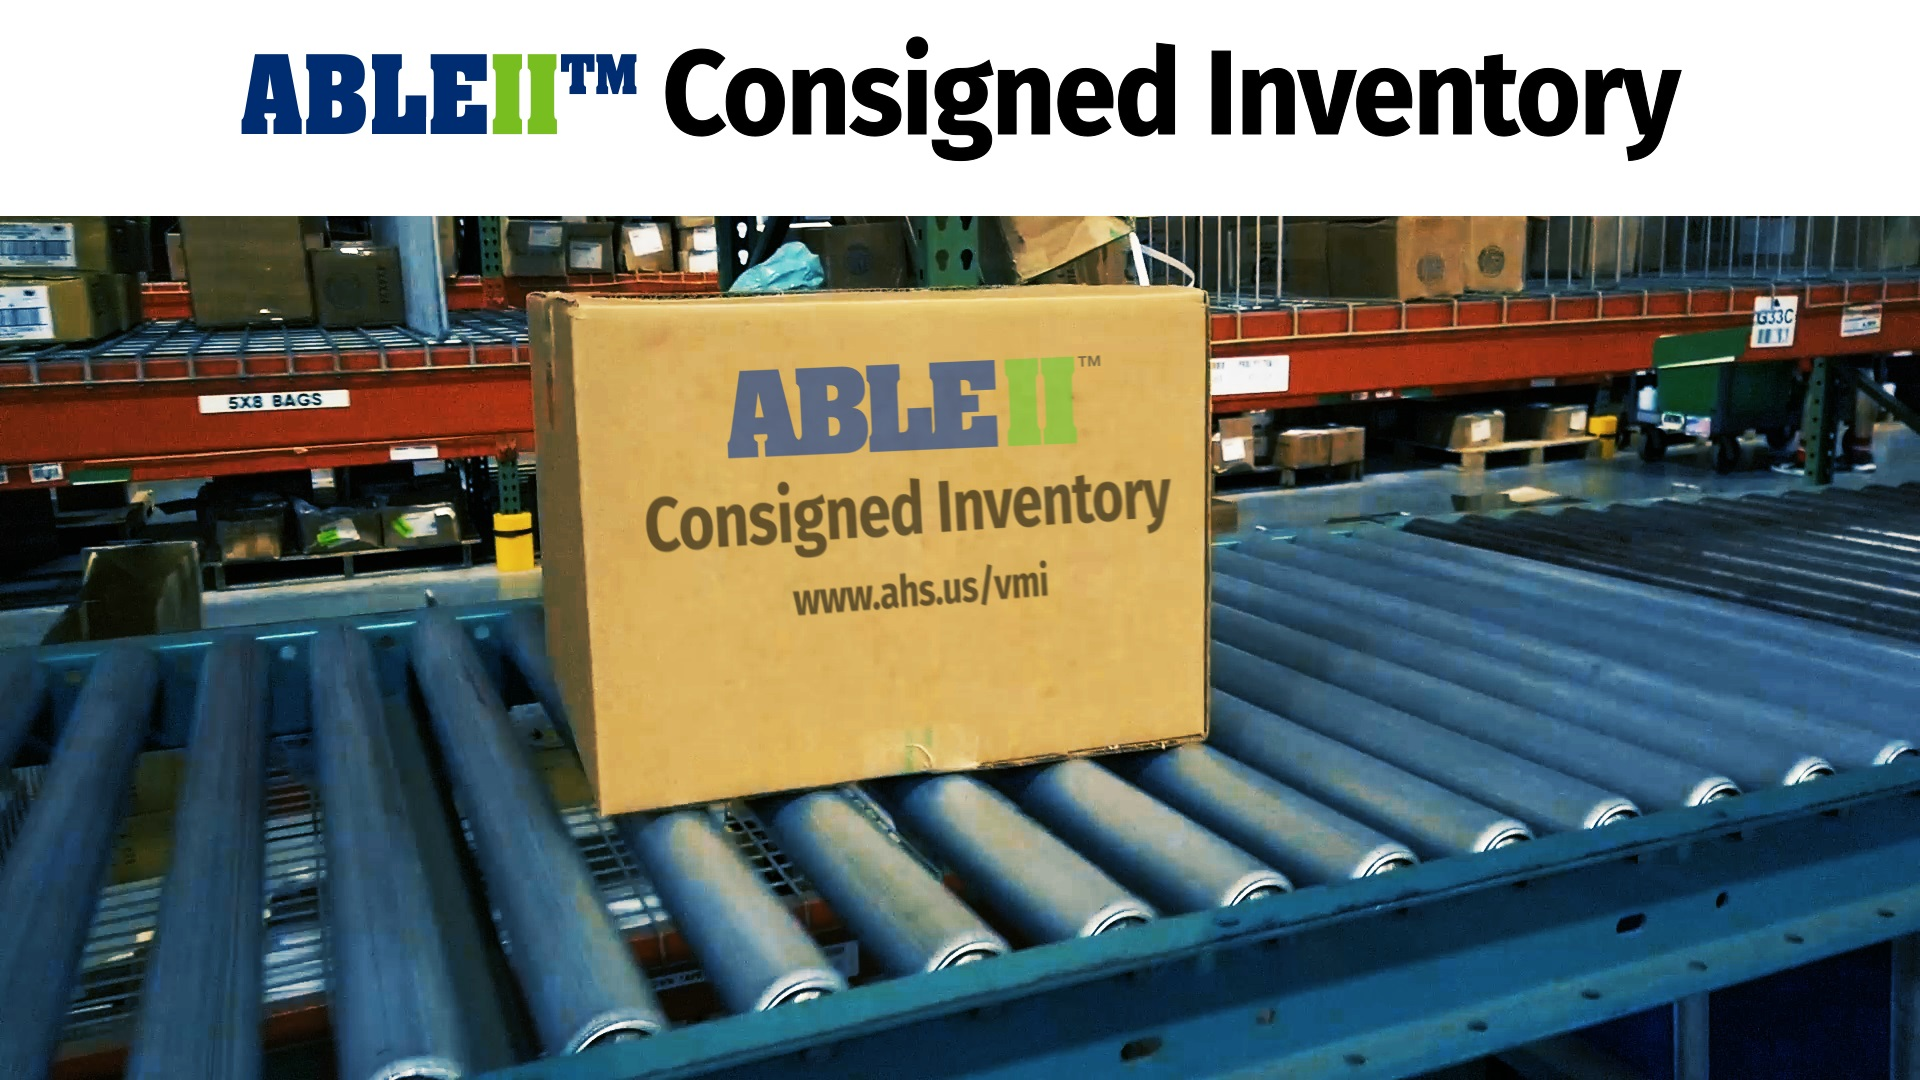 AbleII™ Consigned Inventory V1